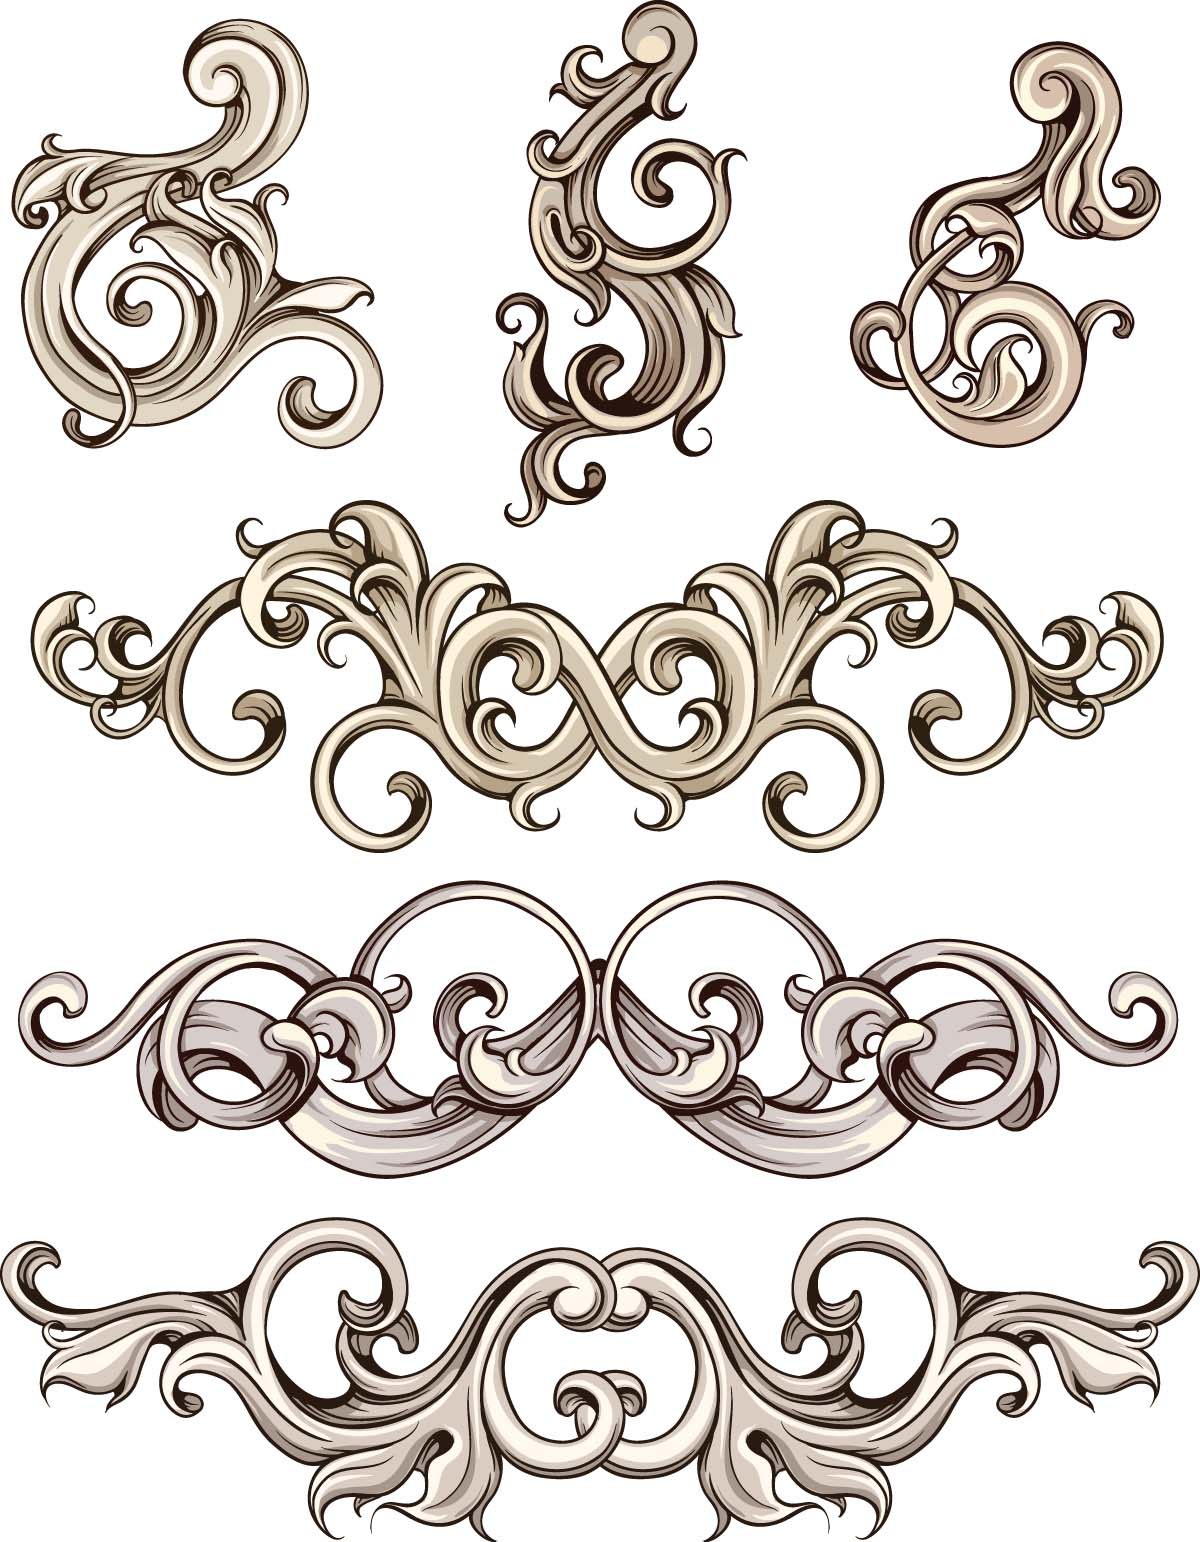 Decorative ornate elements set vector